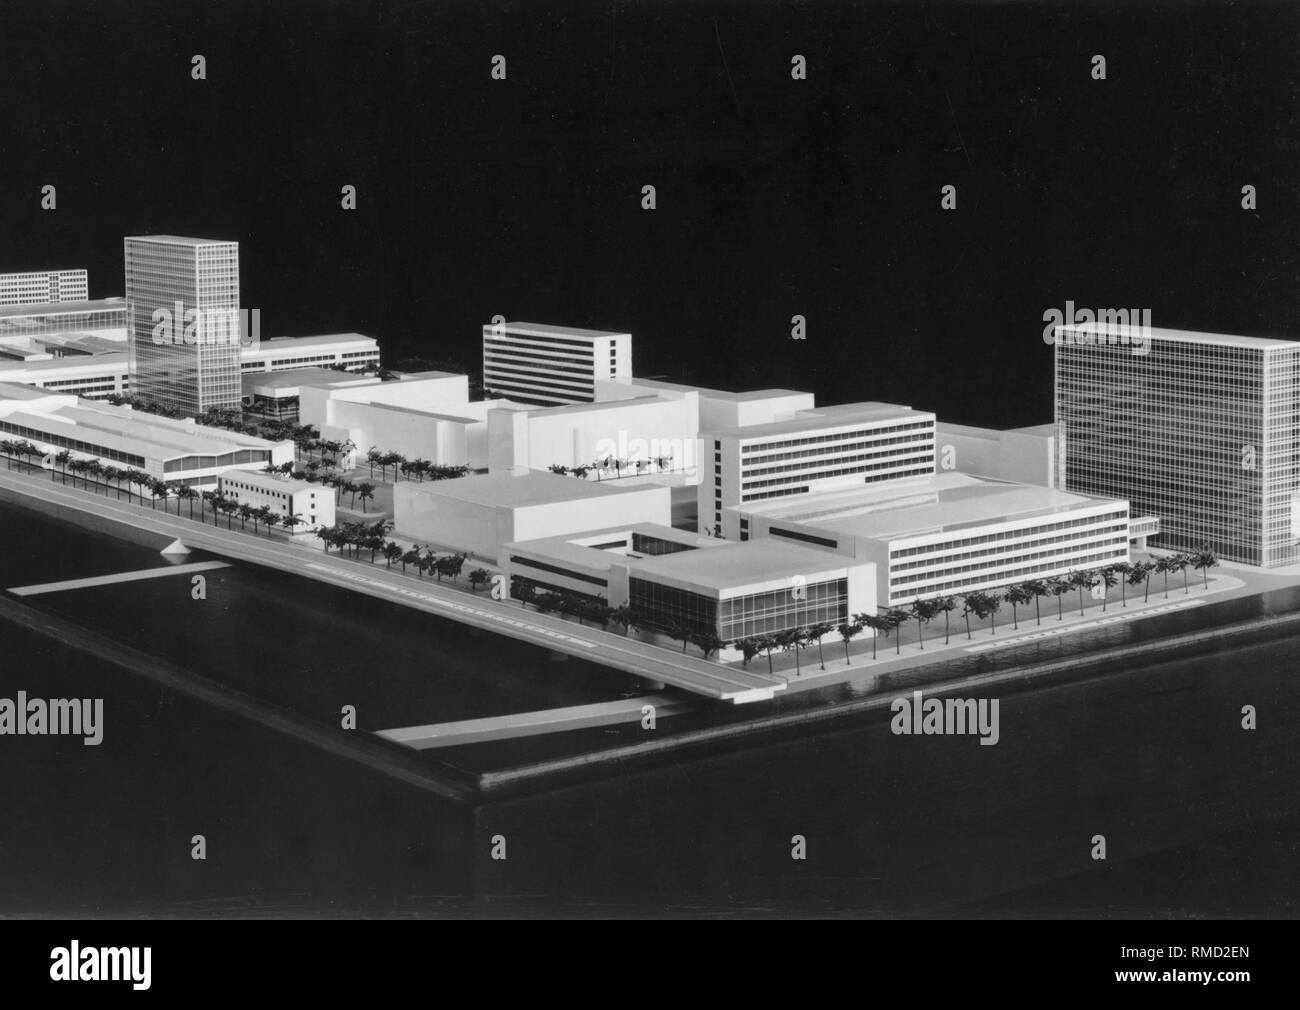 Model of the GDR television center Berlin-Adlershof from the year 1957. Stock Photo